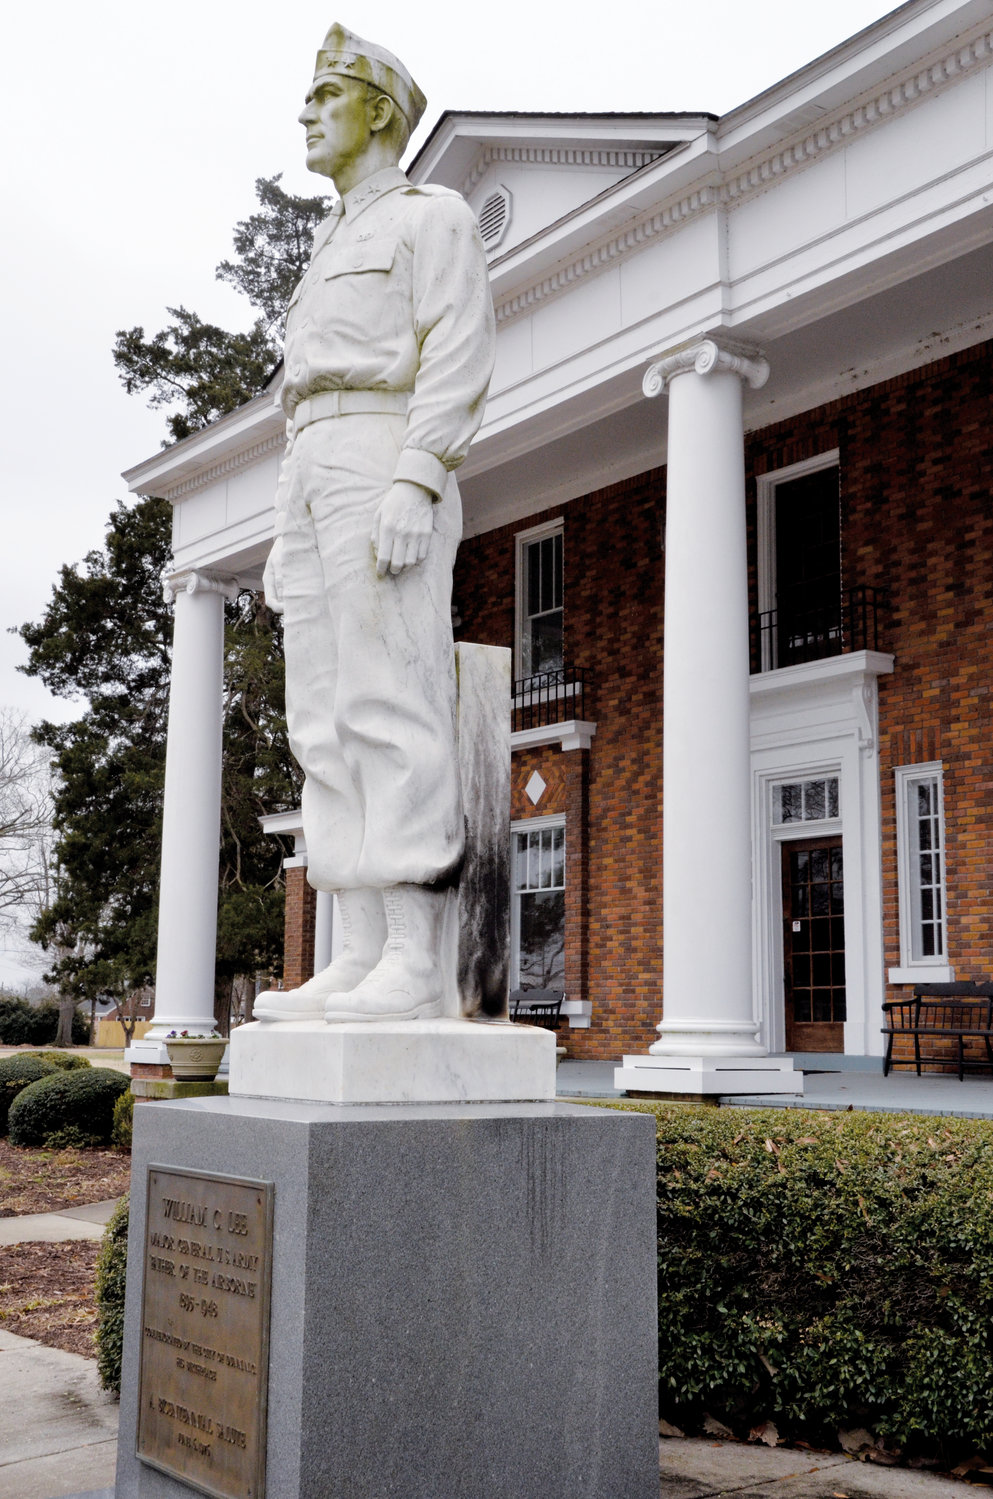 The statue of Gen. William C. Lee, the Dunn native who is considered to be the 'Father of the Airborne' was vandalized last week. Vandals attempted to set the statue on fire. According to William C. Lee Airborne Museum curator Mark Johnson, plans are to repair the statue.